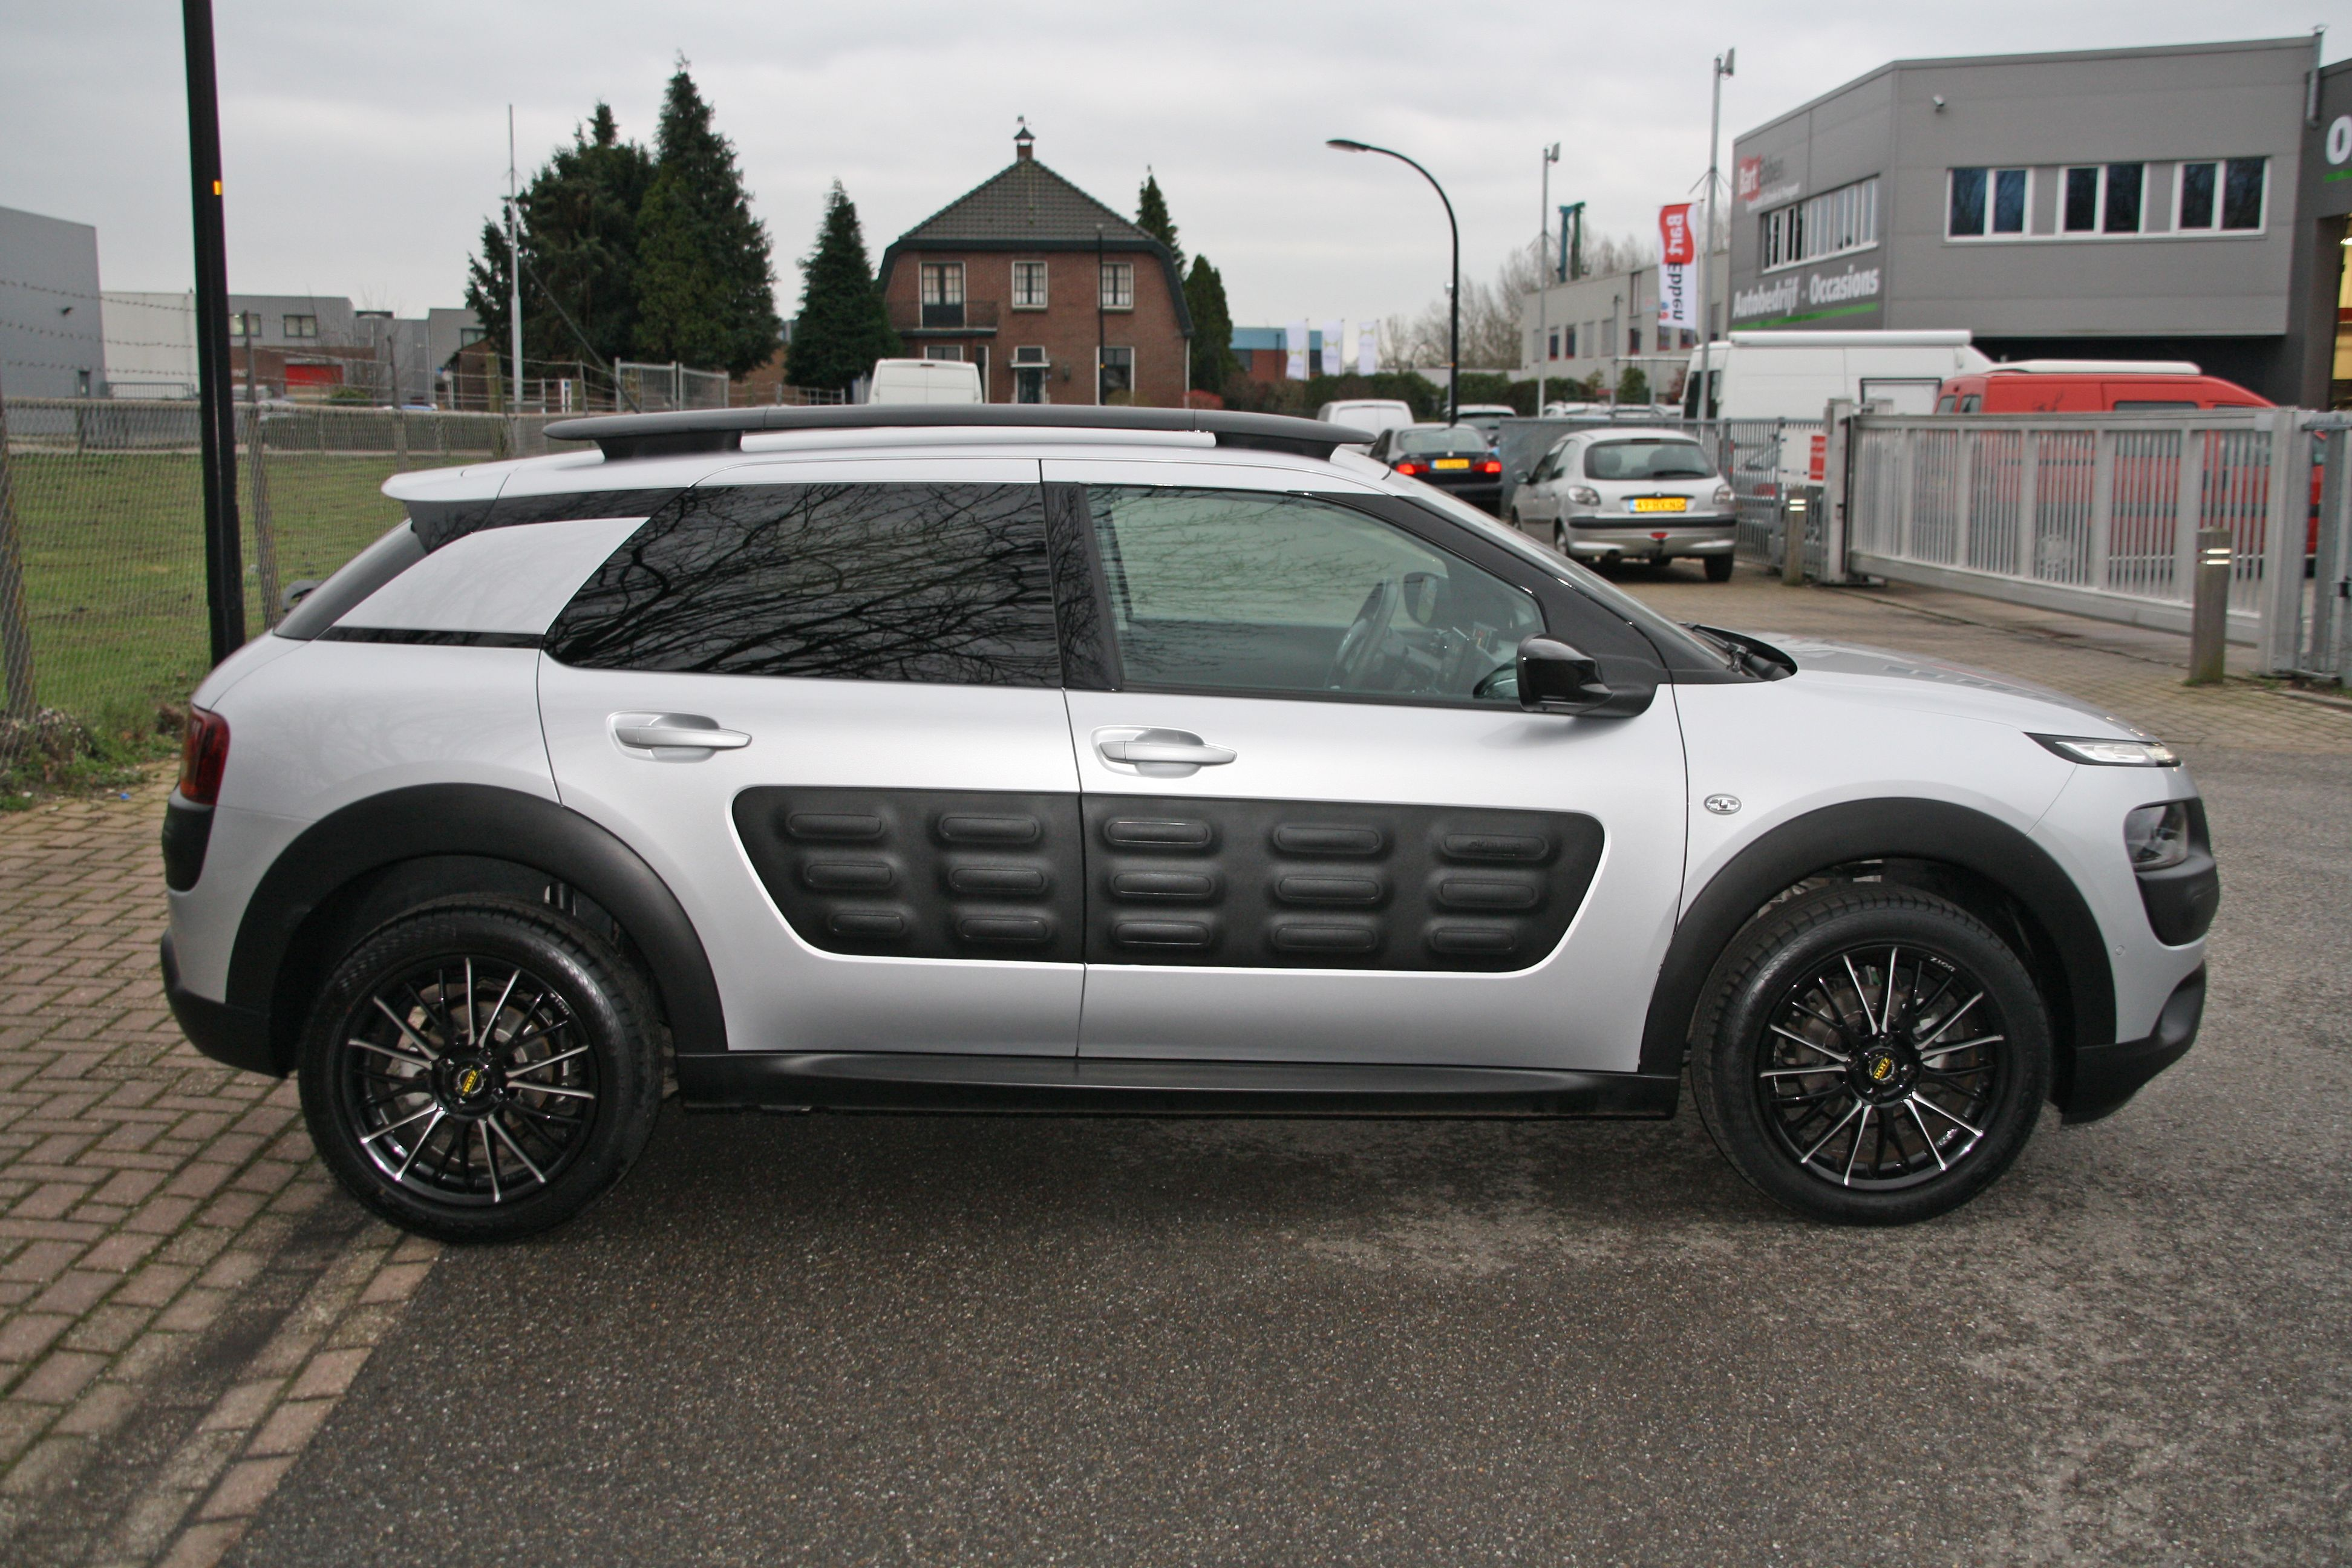 Allroad versatile cross country find used car parts citroen c5 here http barteb pinteres